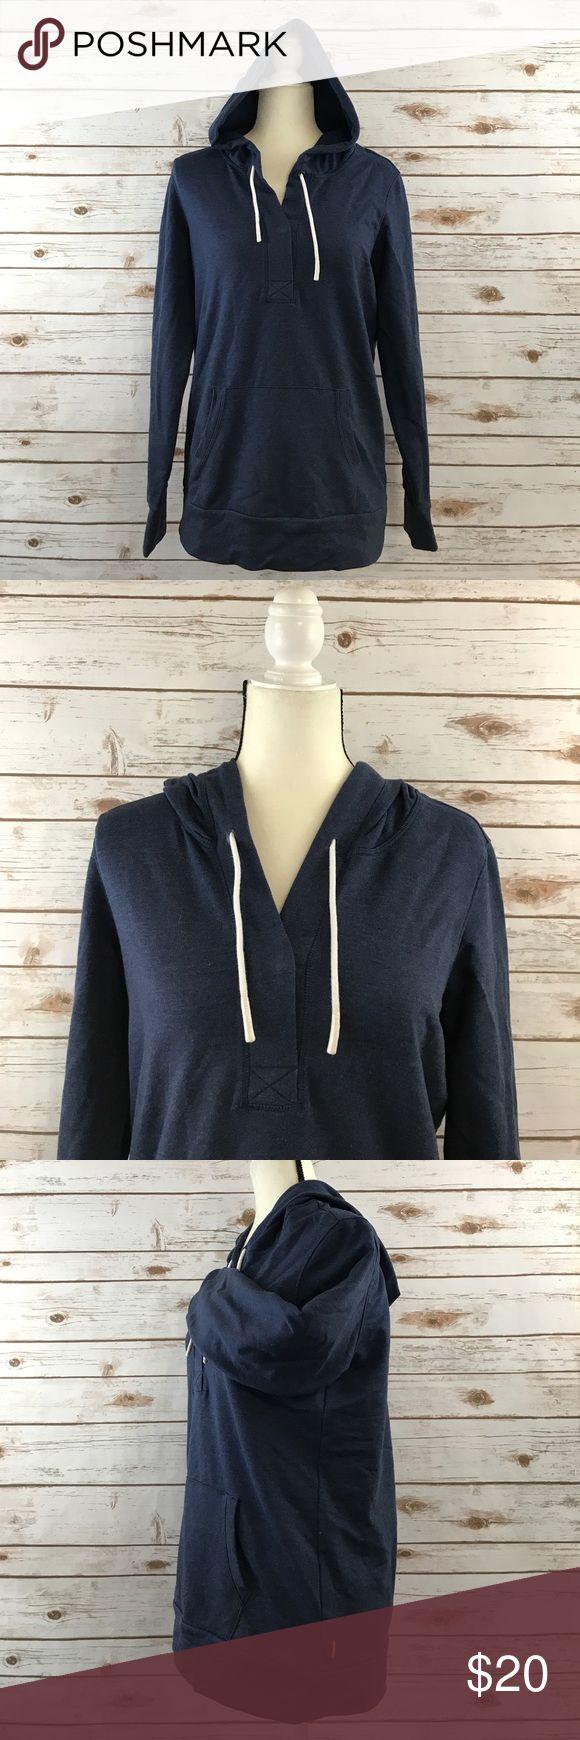 Lucy Athletic Hooded Blue Sweatshirt This is a Lucy activewear Hooded Blue sweater in a size medium. This sweatshirt is a heathered blue color with a kangaroo pocket in the front. It is in like new co diction and has a lot of stretch. Thanks! Lucy Sweaters